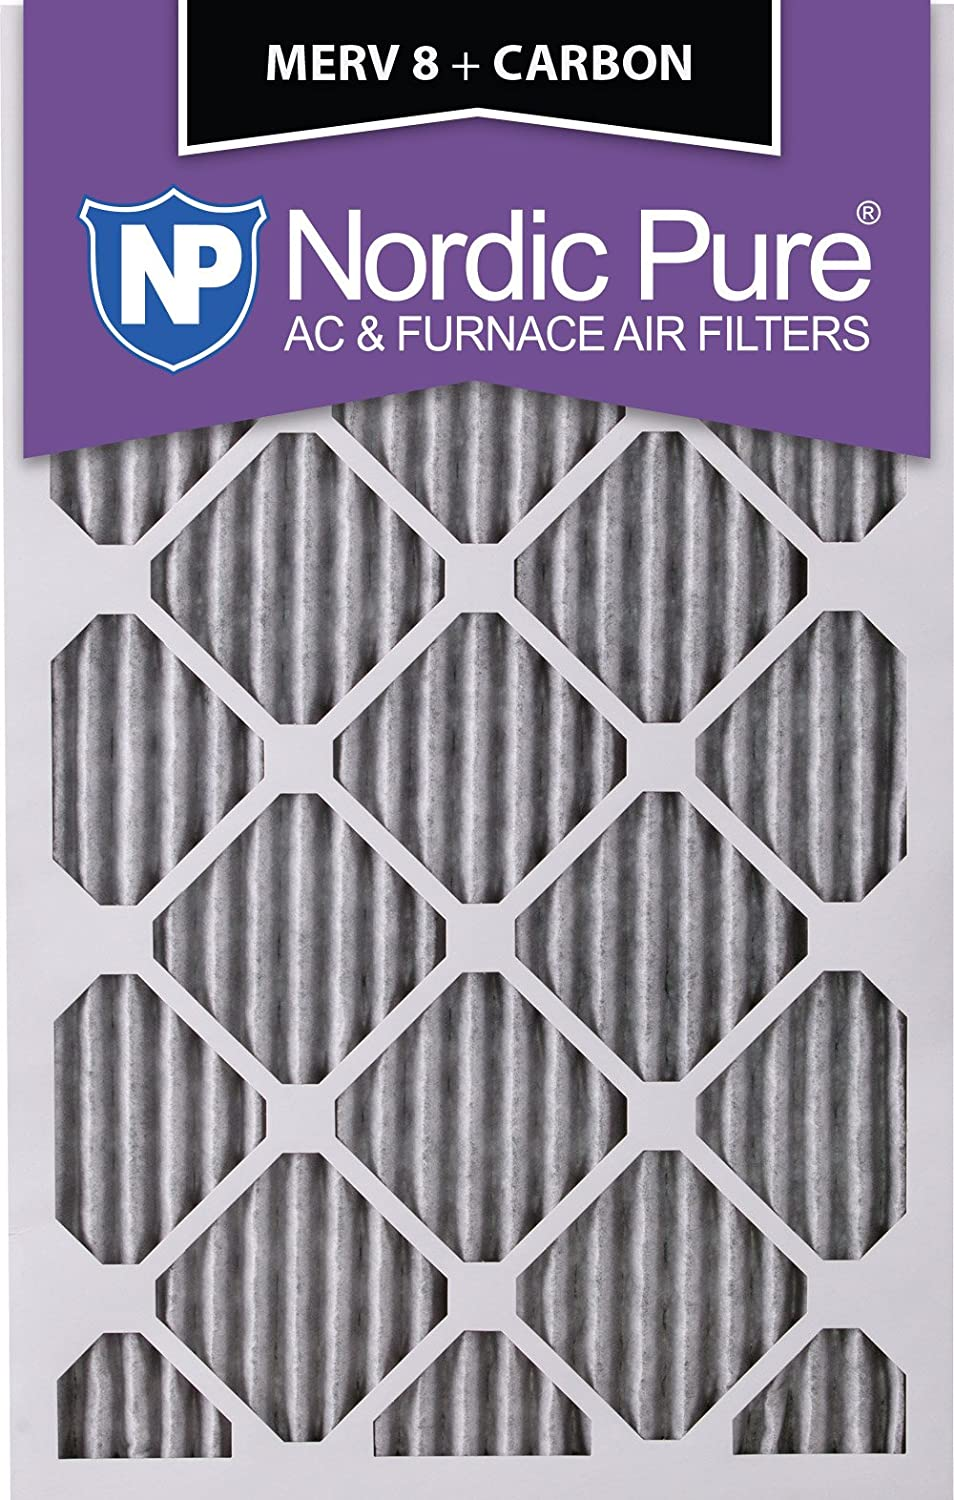 6 Pack 14x20x1PM8 C 6 Piece Nordic Pure 14x20x1 MERV 8 Pleated Plus Carbon AC Furnace Air Filters